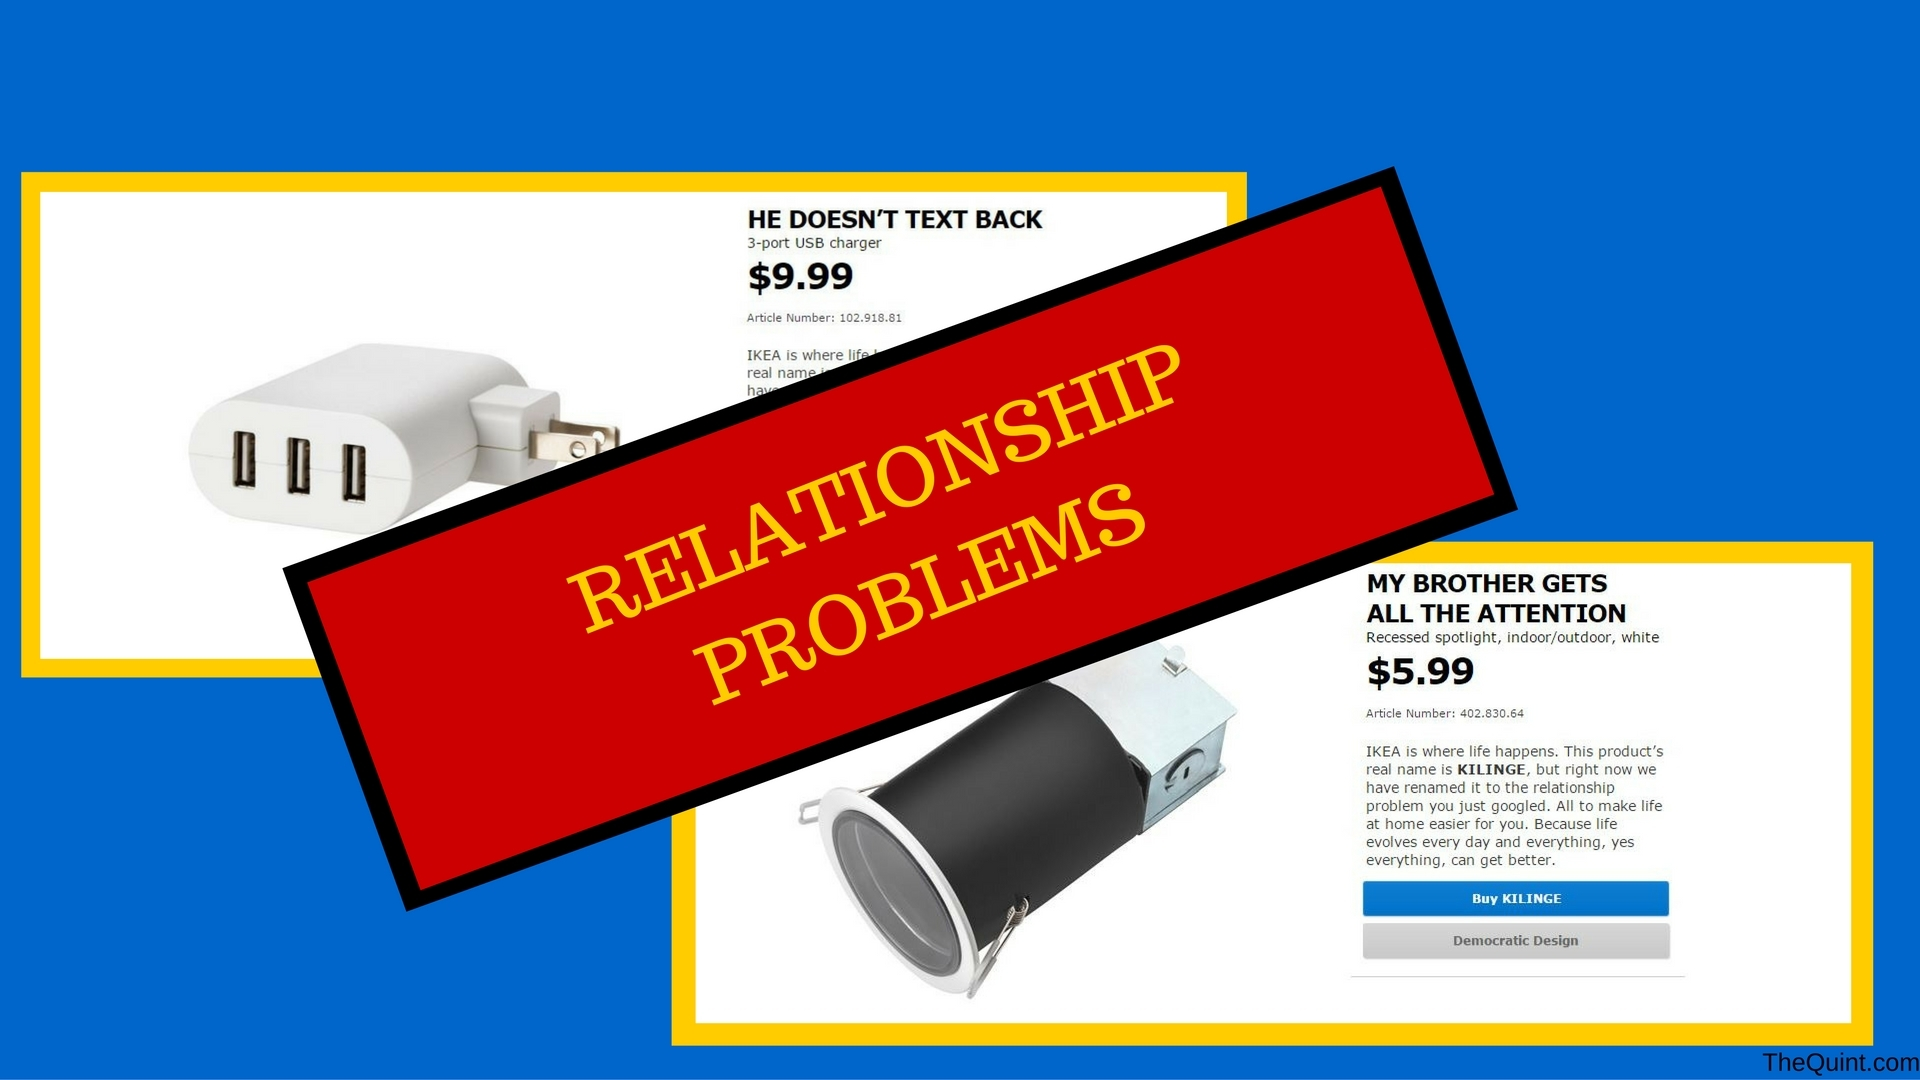 ikea relationship marketing examples